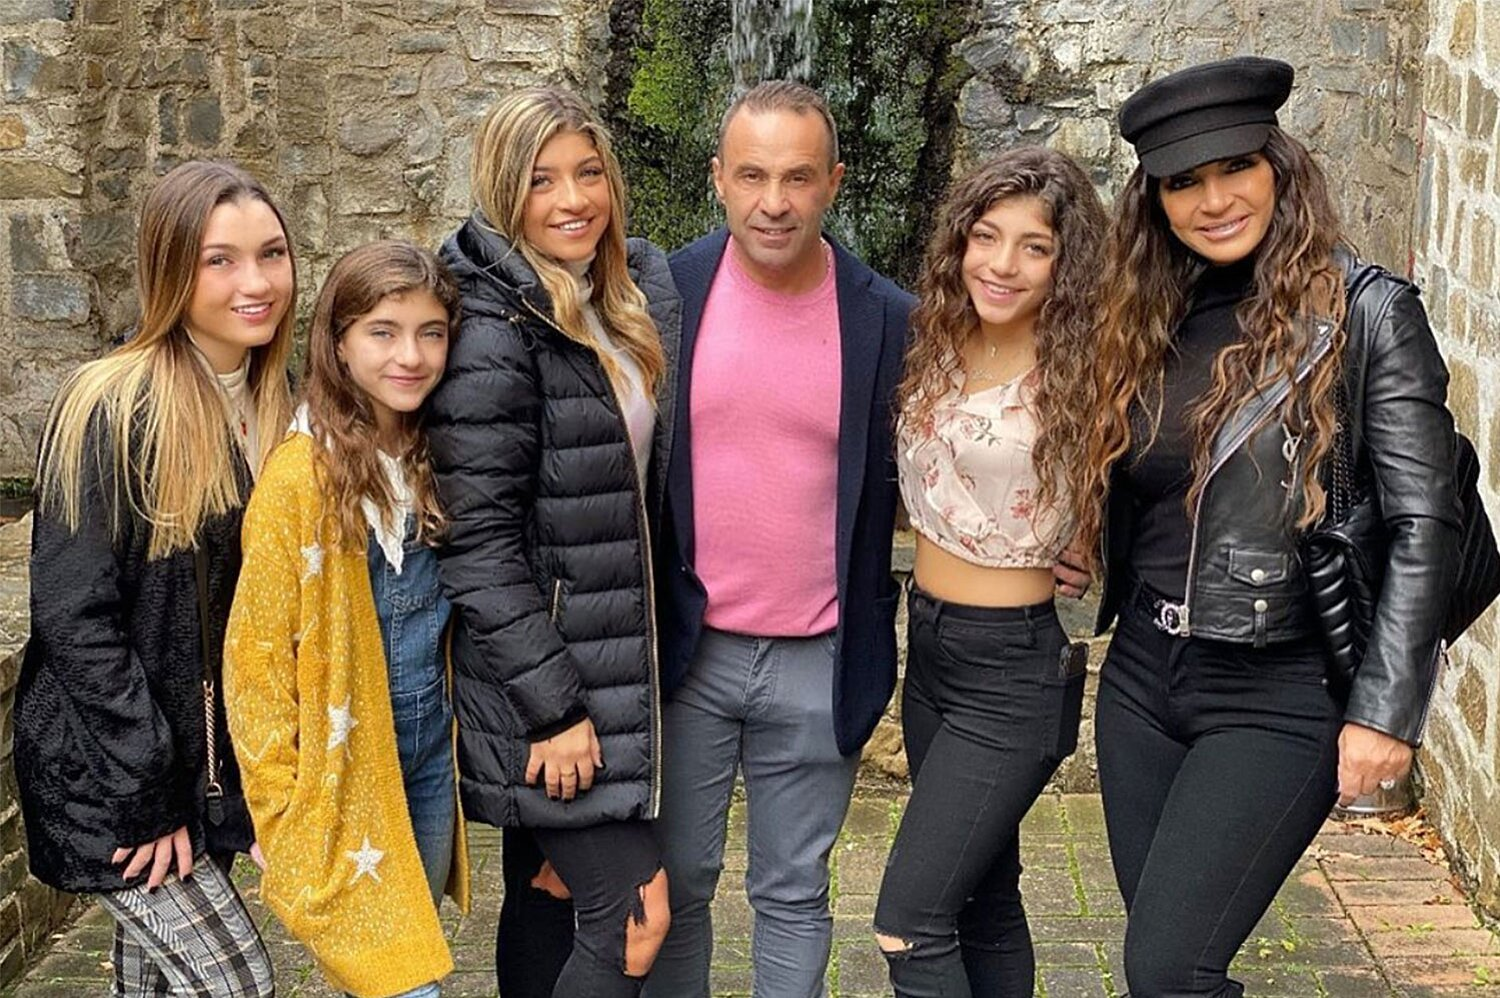 Teresa Giudice And Joe Giudice Finalize Divorce People Com Joe giudice misses his daughters 'so much already' after they return from visiting him in italy. teresa giudice and joe giudice finalize